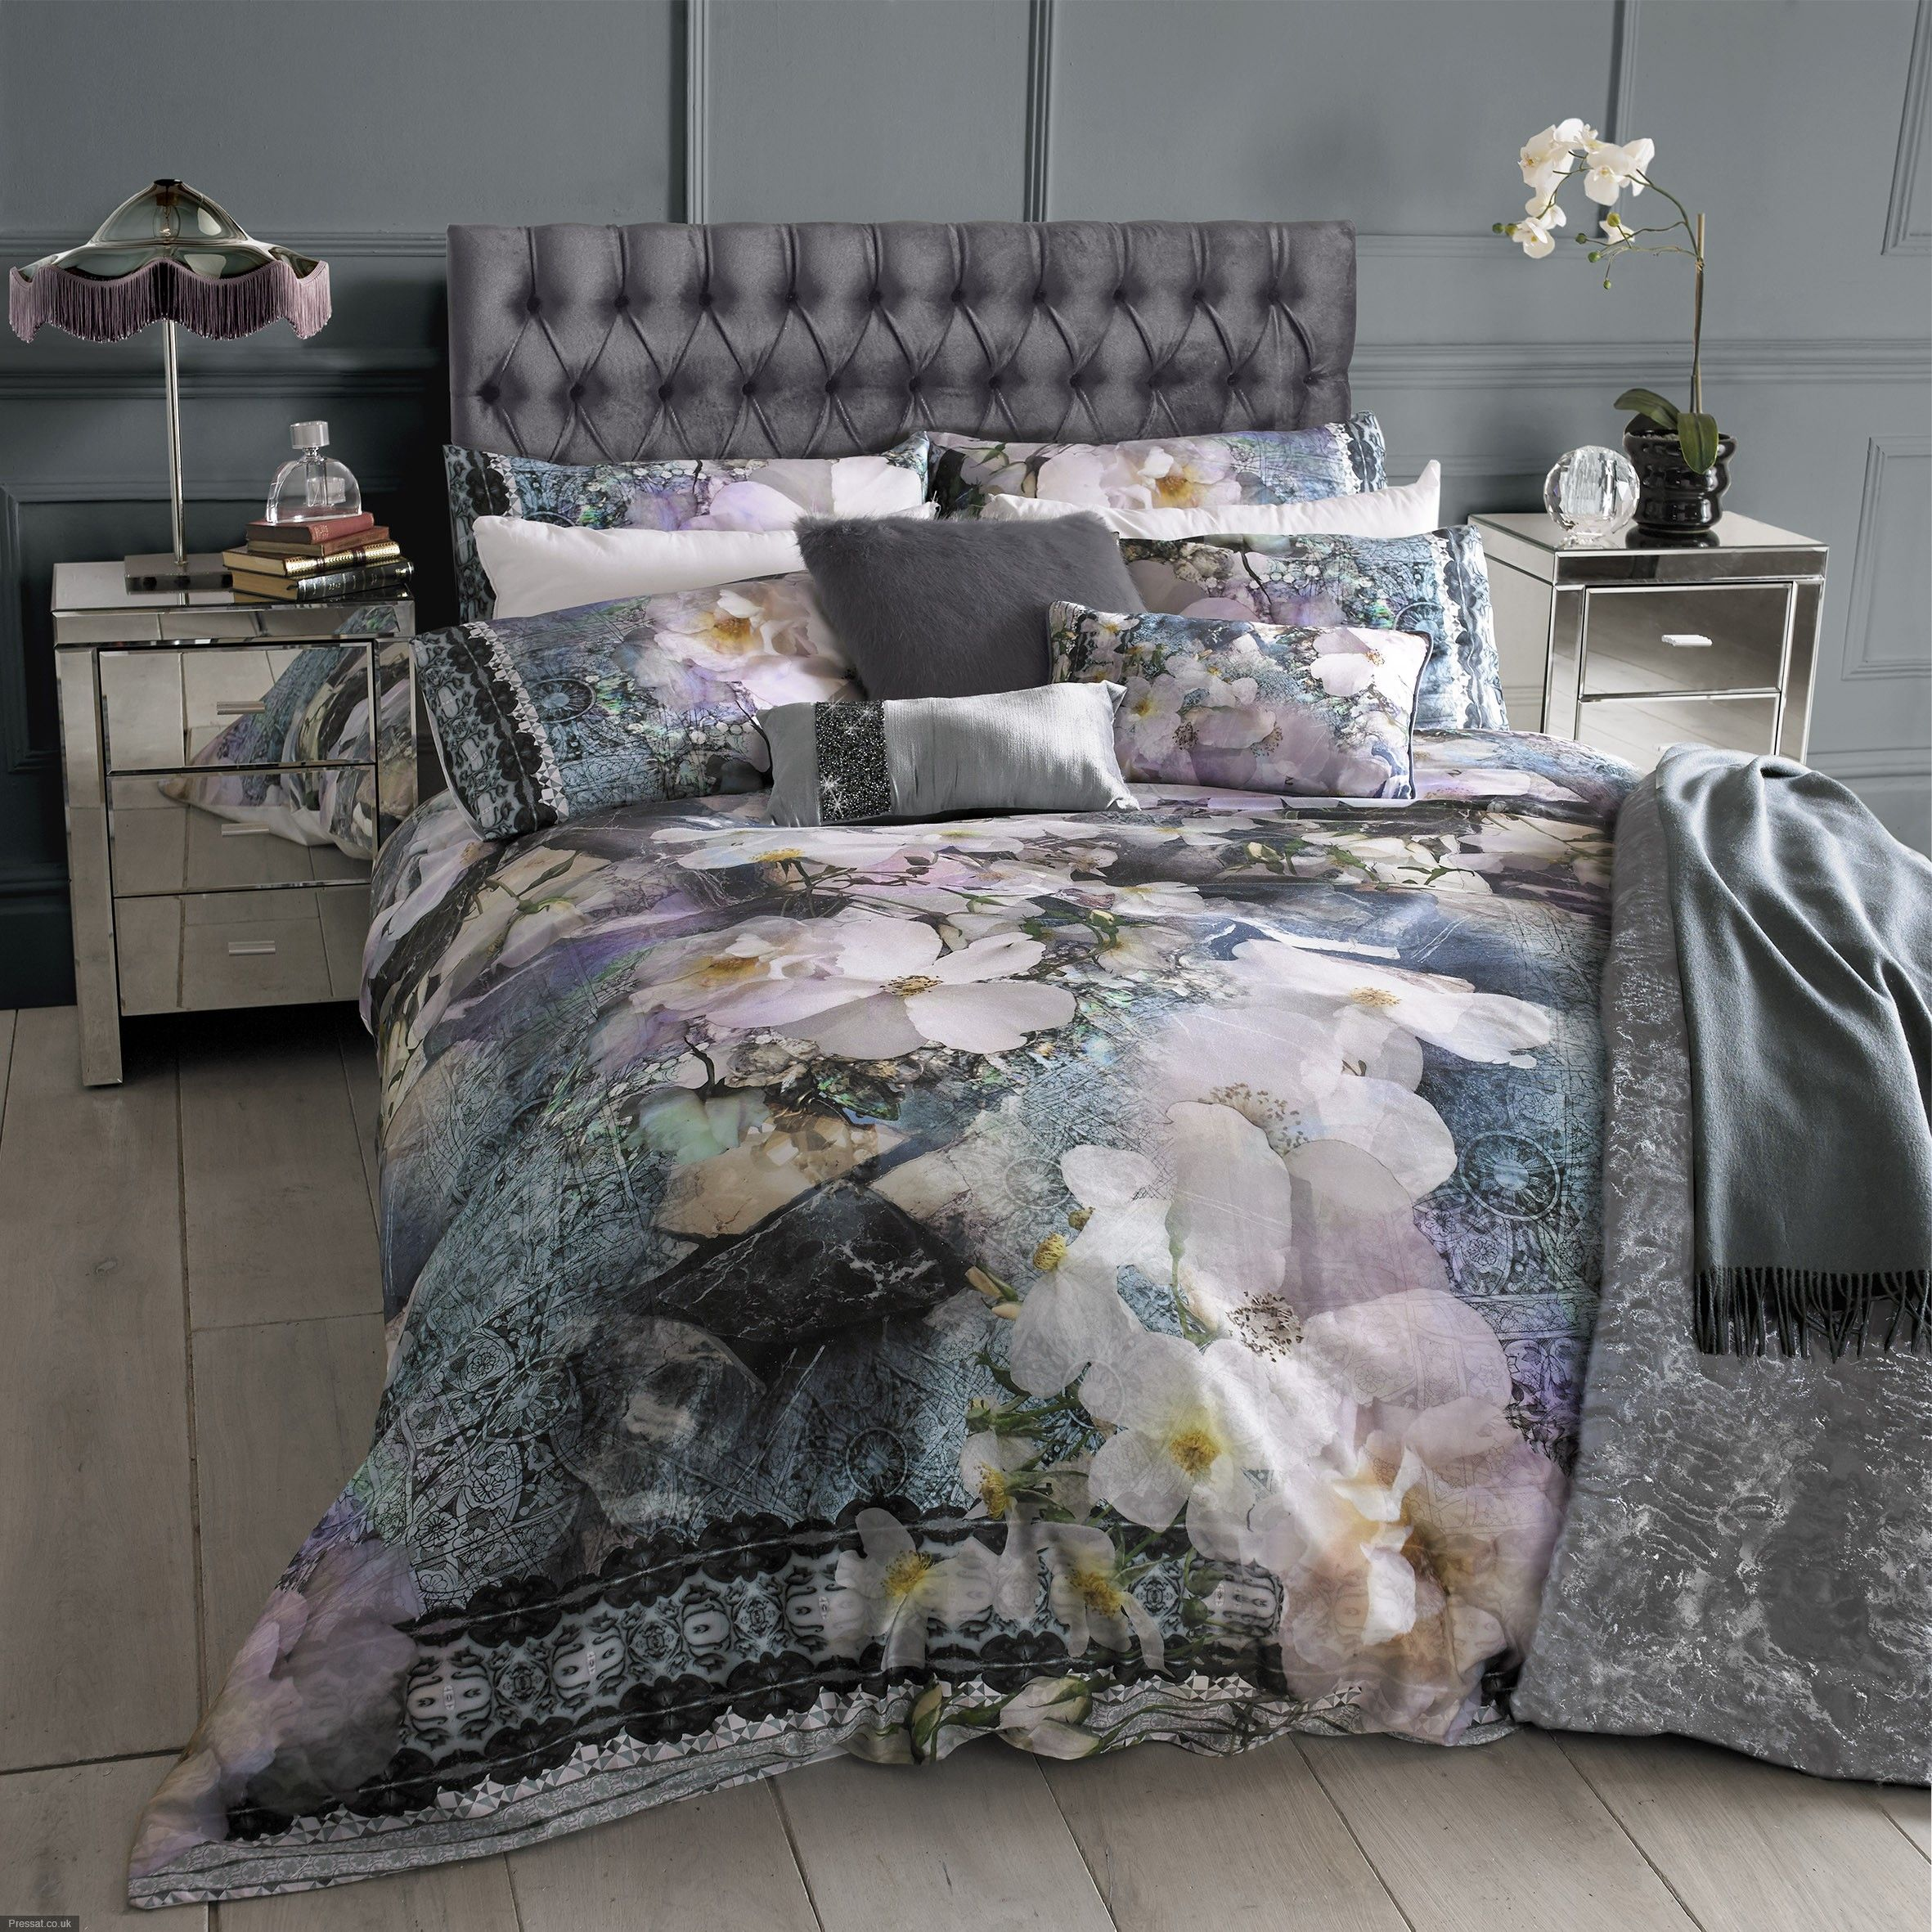 floral ted baker bedding and divine silver cabinetry